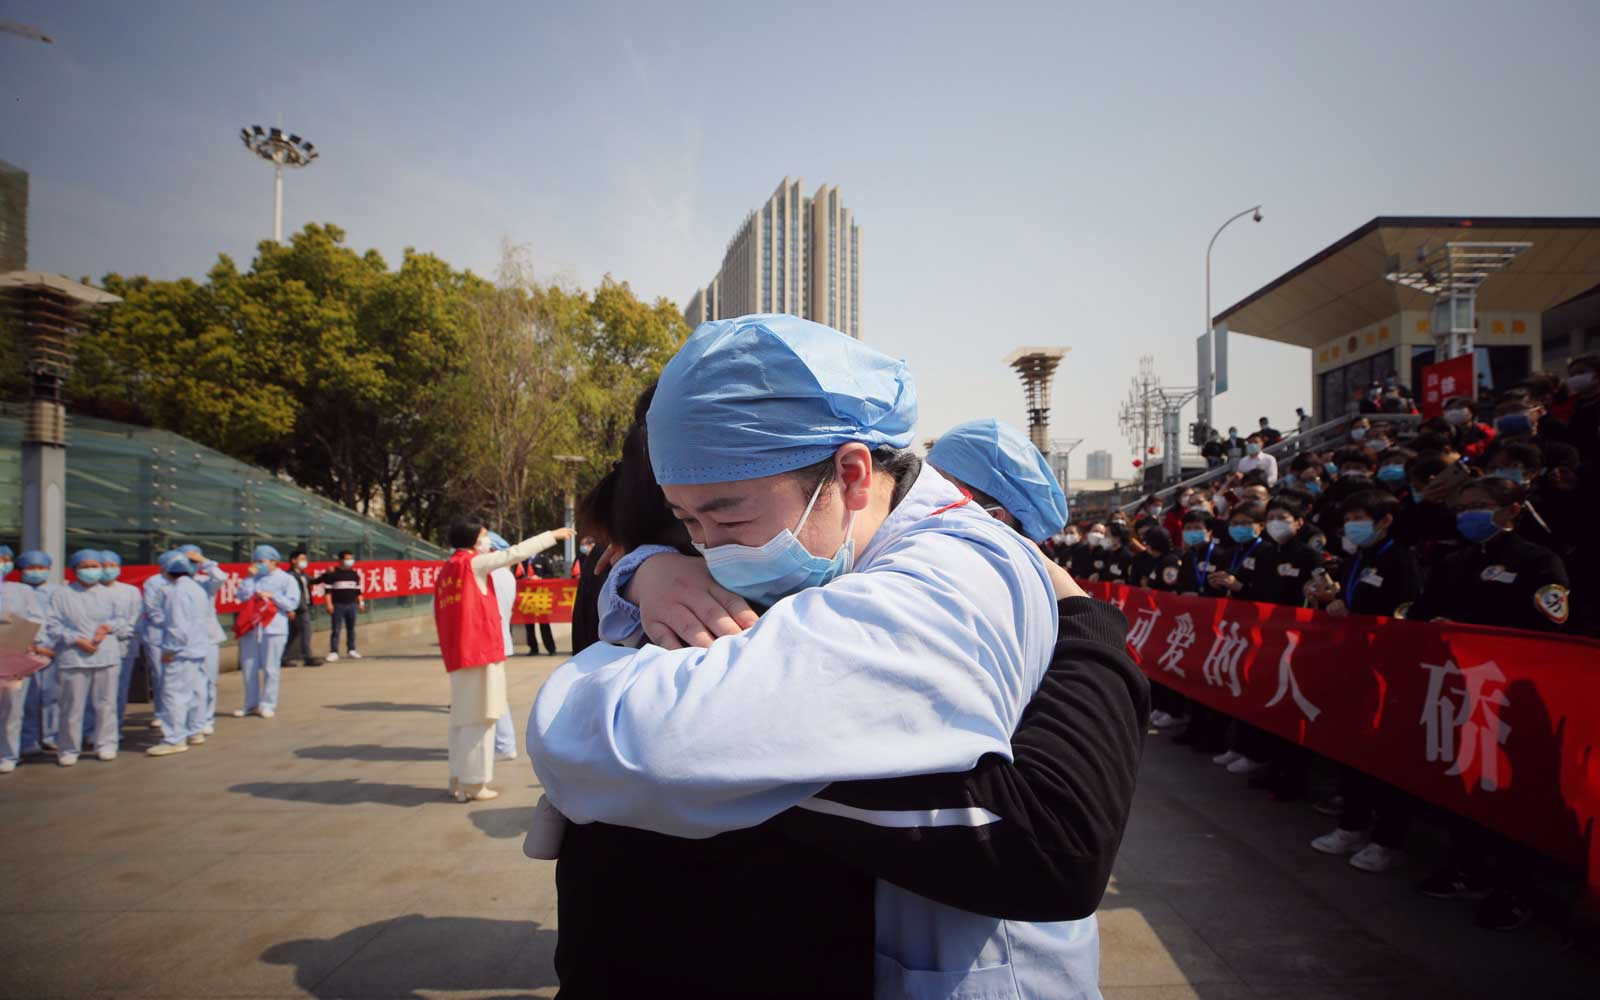 A medical worker (R) embraces a member of a medical assistance team from Jiangsu province at a ceremony marking their departure after helping with the COVID-19 coronavirus recovery effort, in Wuhan, in China's central Hubei province on March 19, 2020.